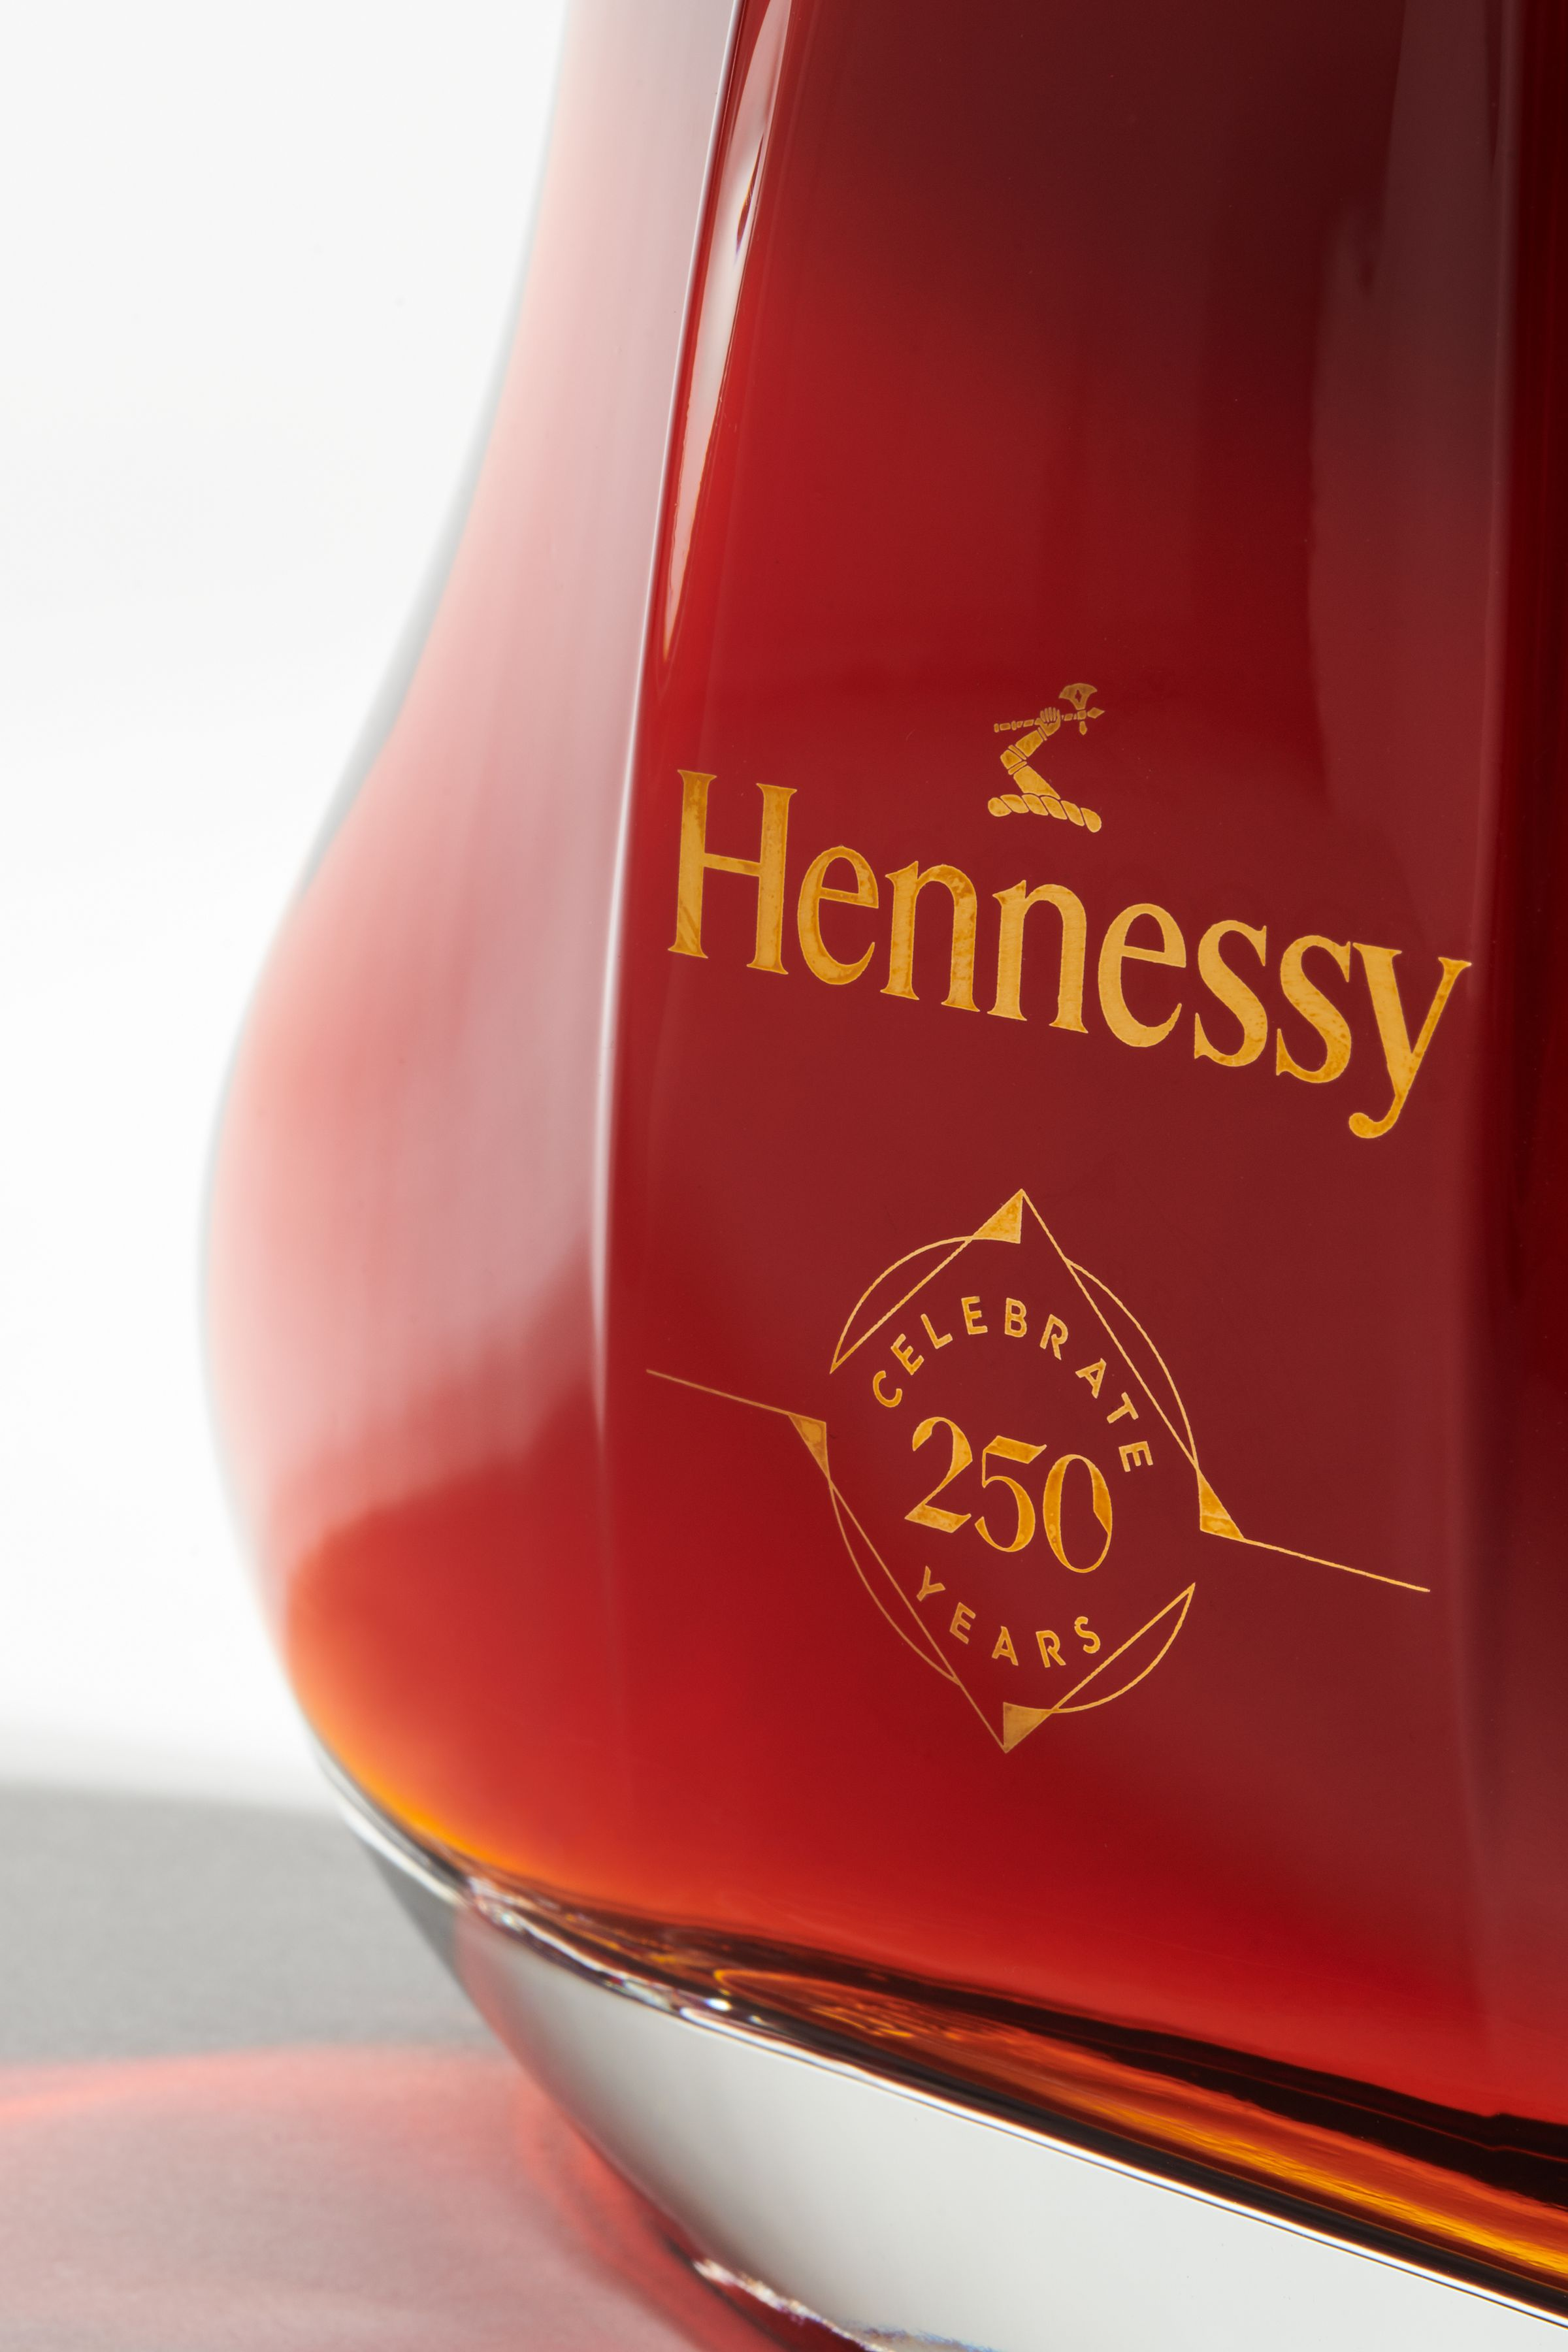 Hennessy 250 anniversary collector's blend logo applied to bottle